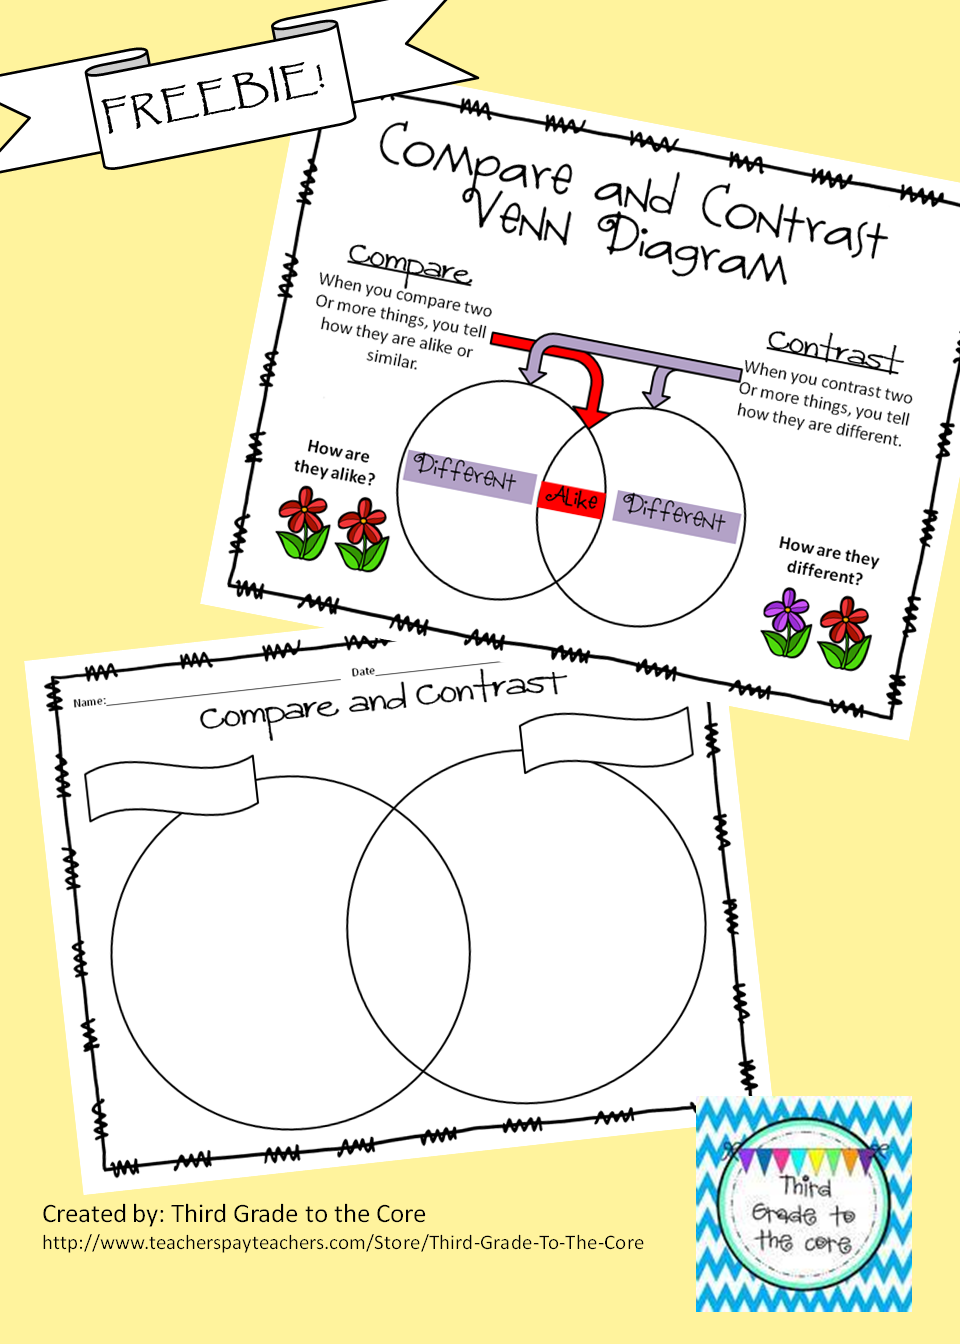 Freebie! Compare and Contrast Venn Diagram with Classroom Poster!   Compare  and contrast [ 1344 x 960 Pixel ]